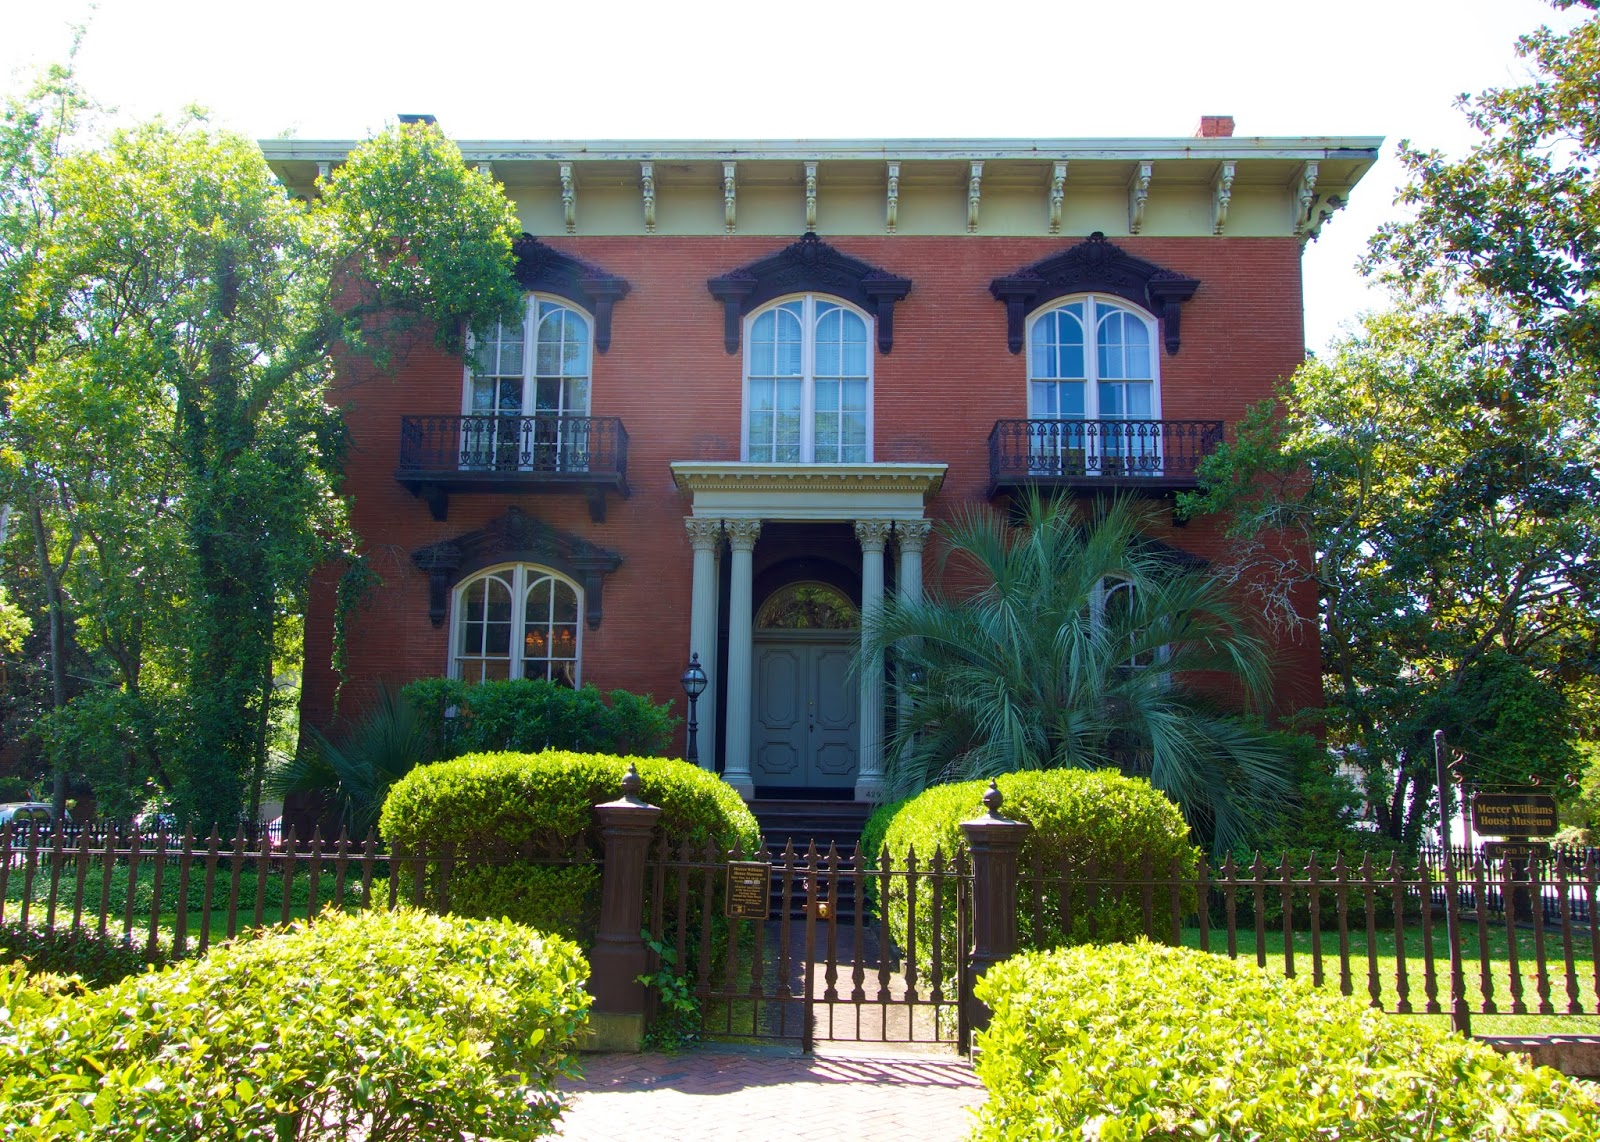 The Mercer Williams House in Savannah Georgia